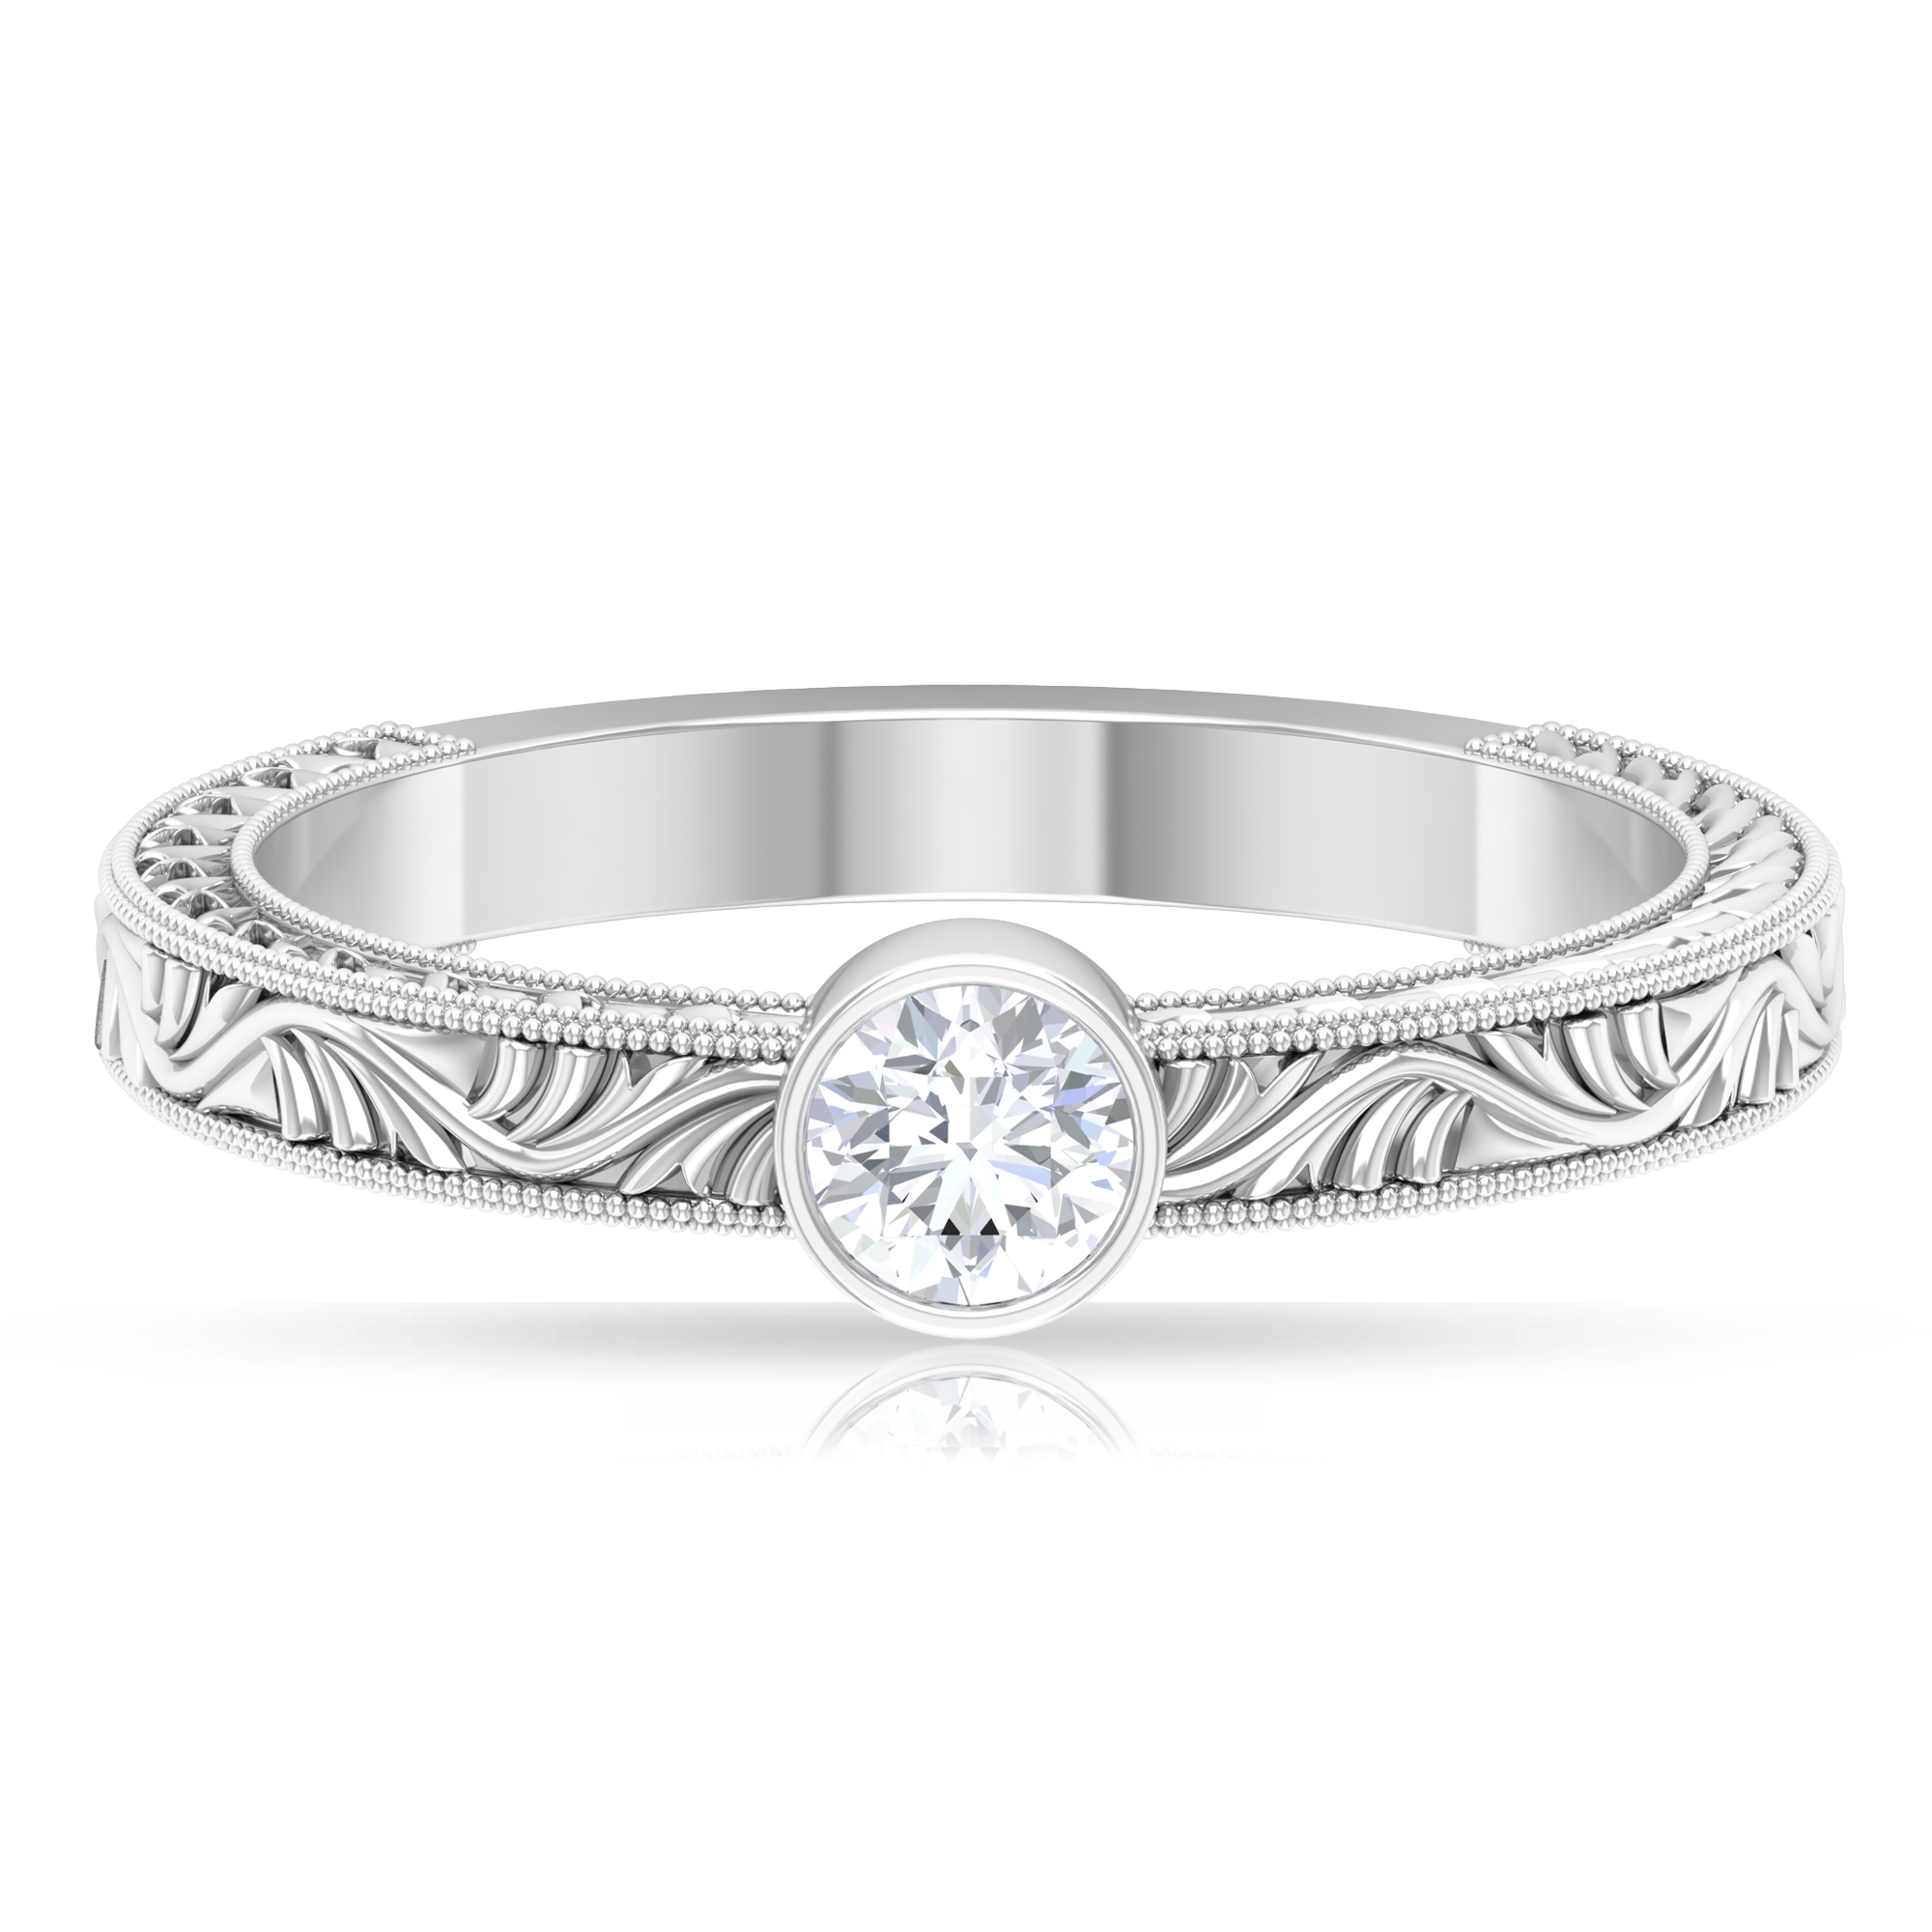 4X4 MM Round Shape Diamond Solitaire Ring in Bezel Setting with Gold Milgrain Engraved Details